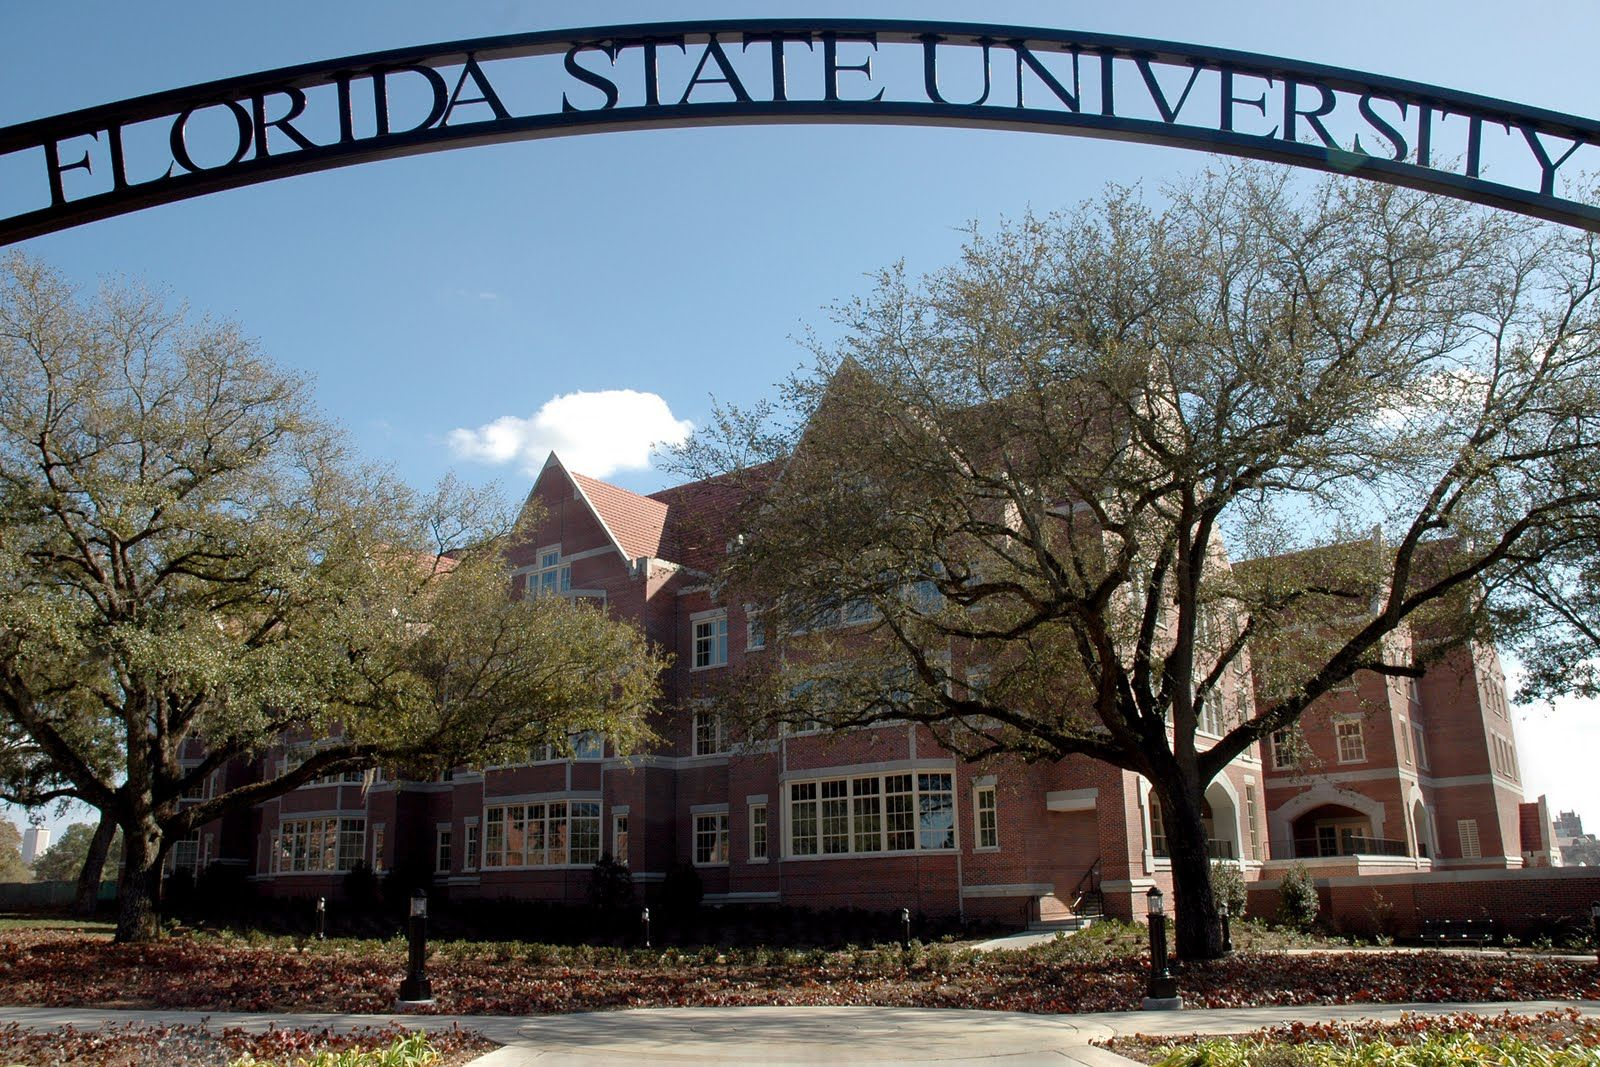 Florida State University Browser Themes Wallpapers Florida State University Florida State Colleges In Florida